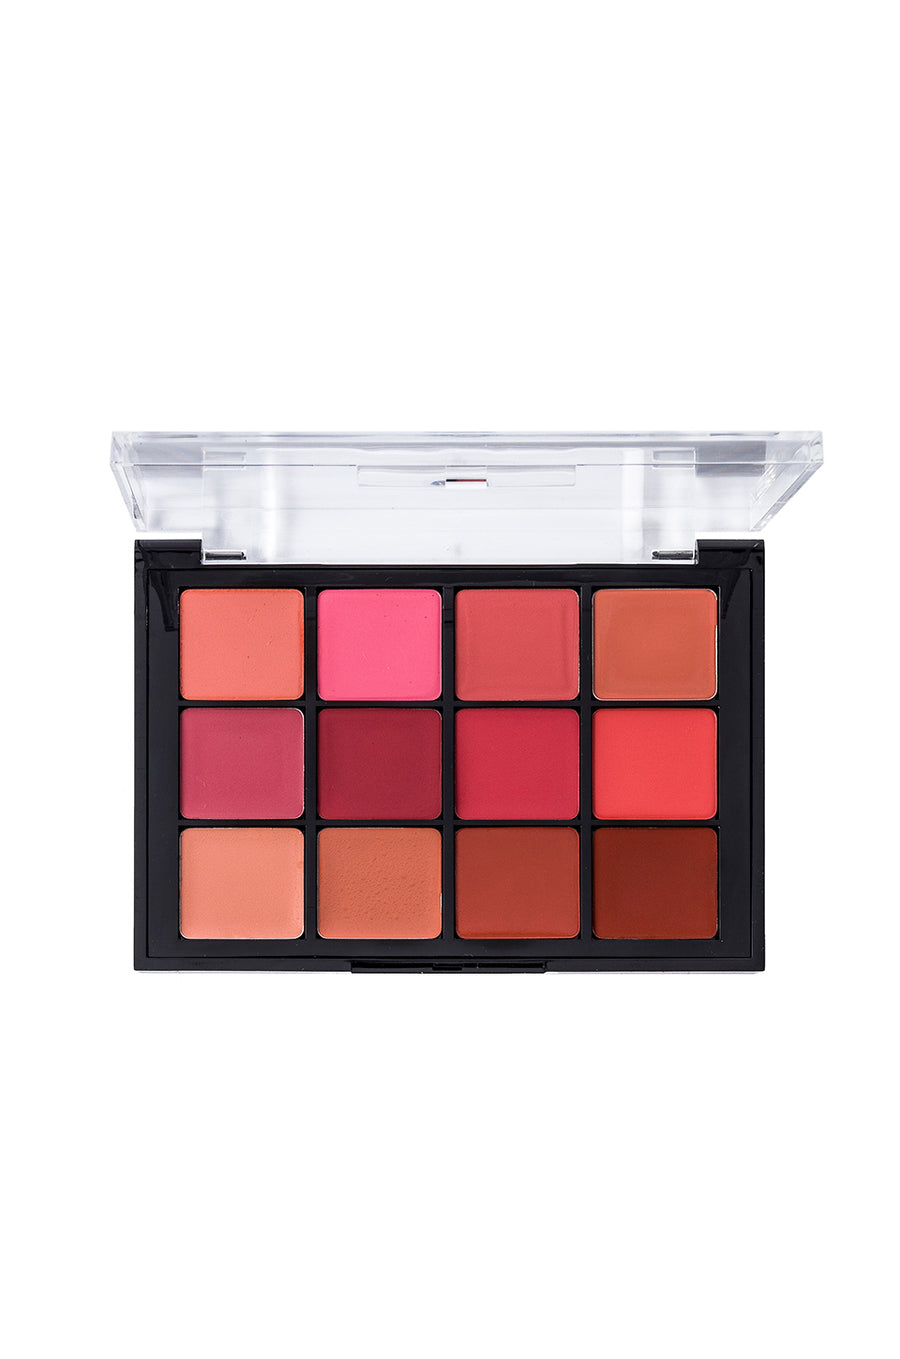 Viseart Classic Lip Palette paris velvet 02 - Precious About Make-up, (product_title),Lips, Viseart